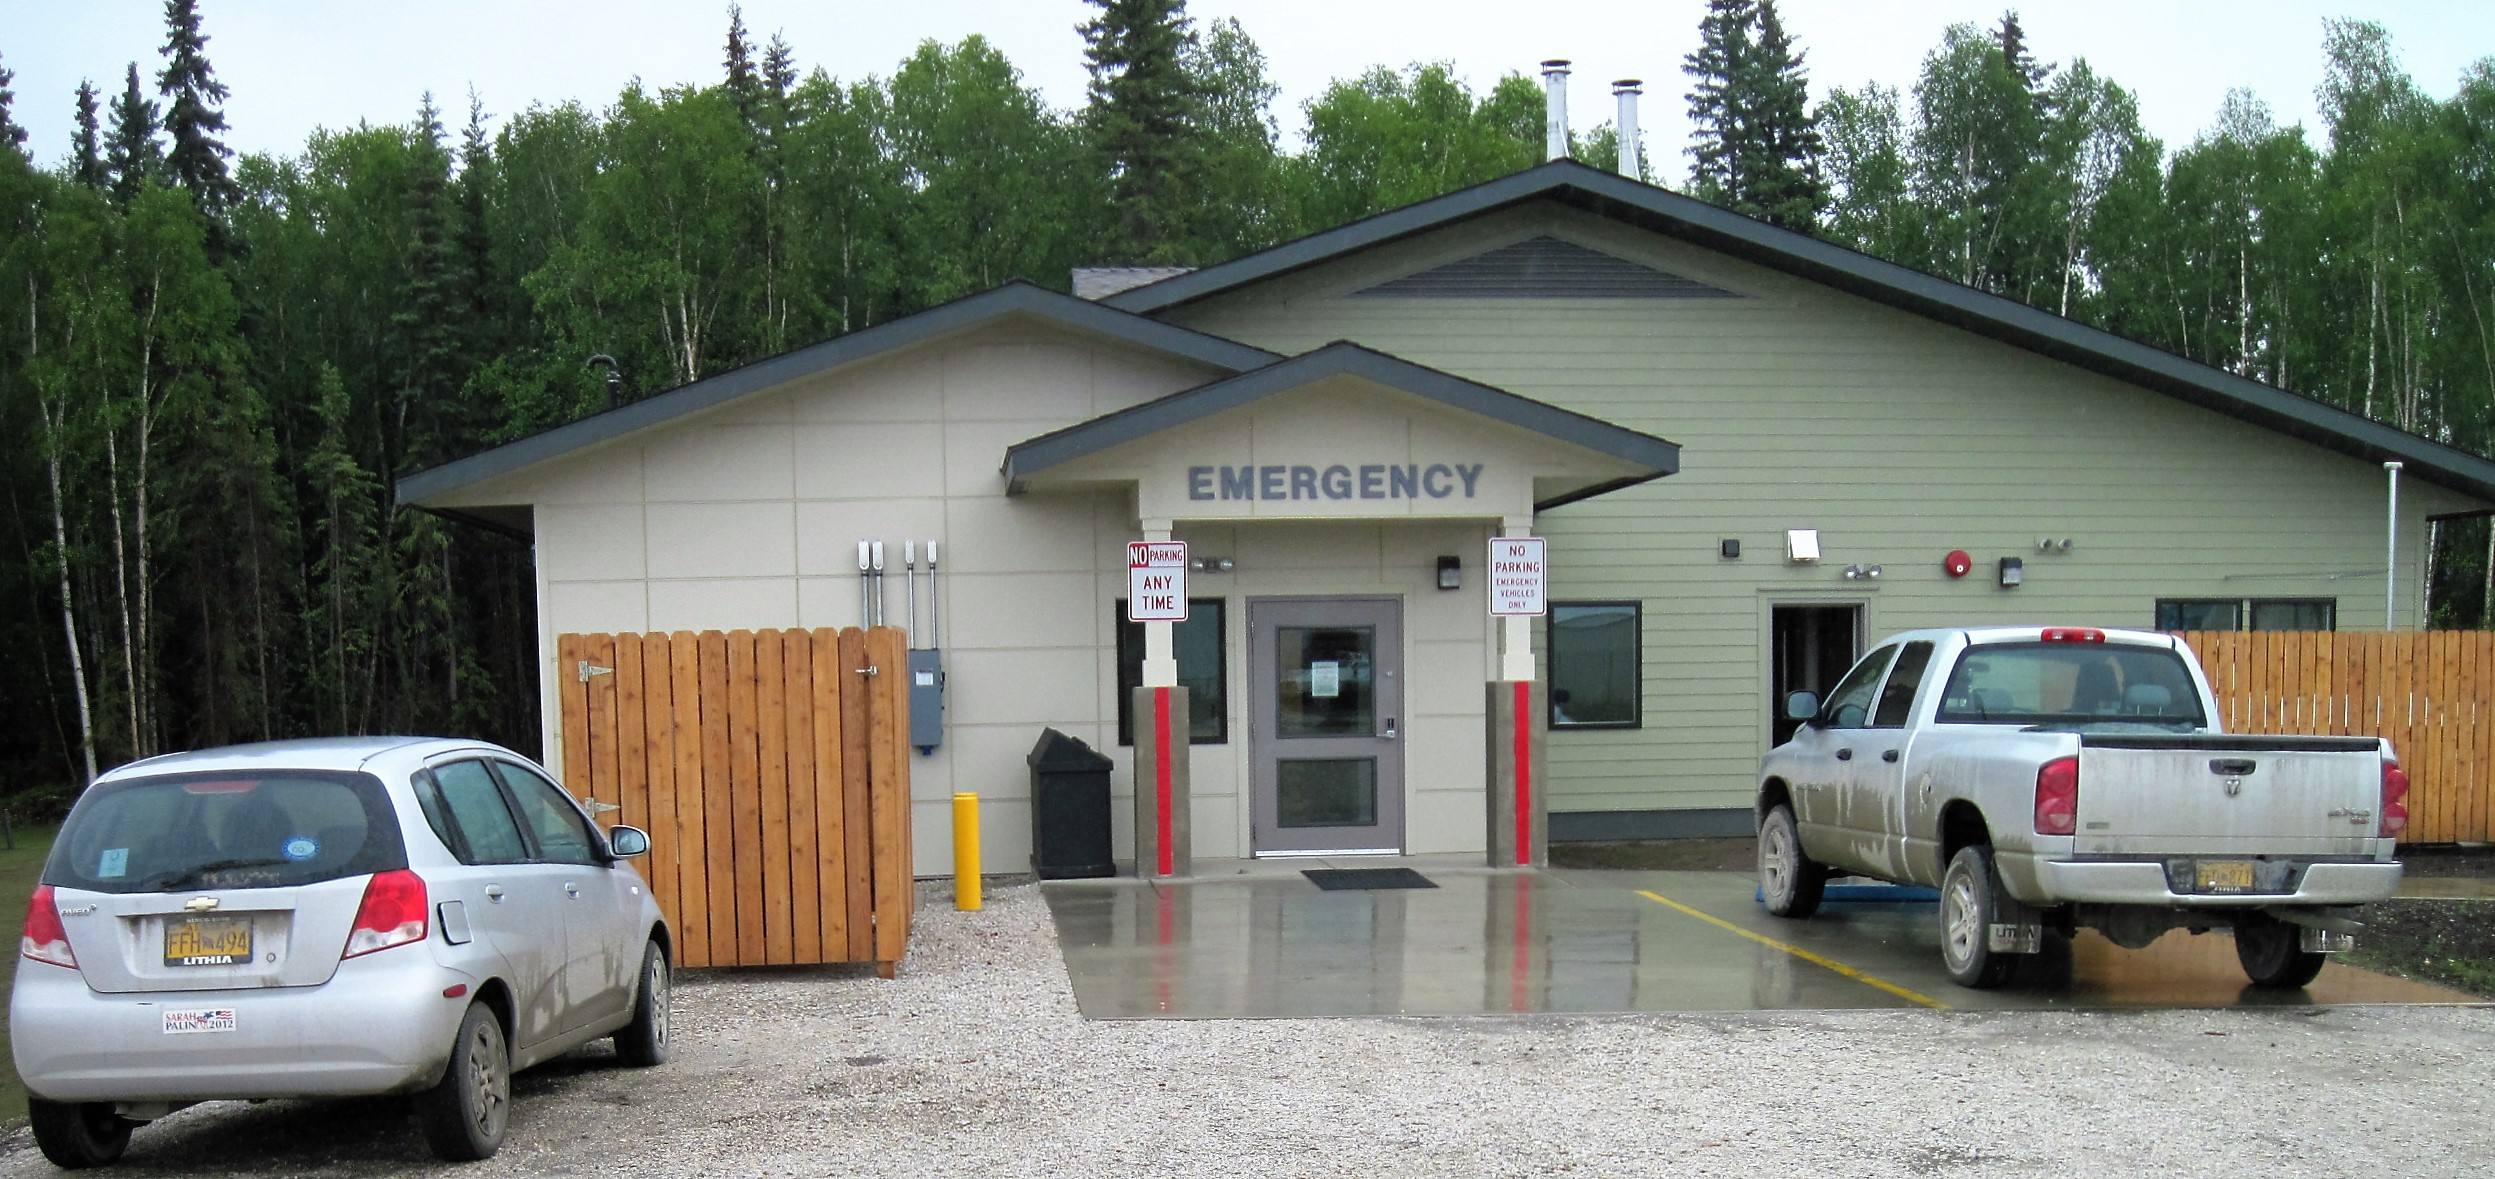 McGrath Regional Health Center Emergency Entry